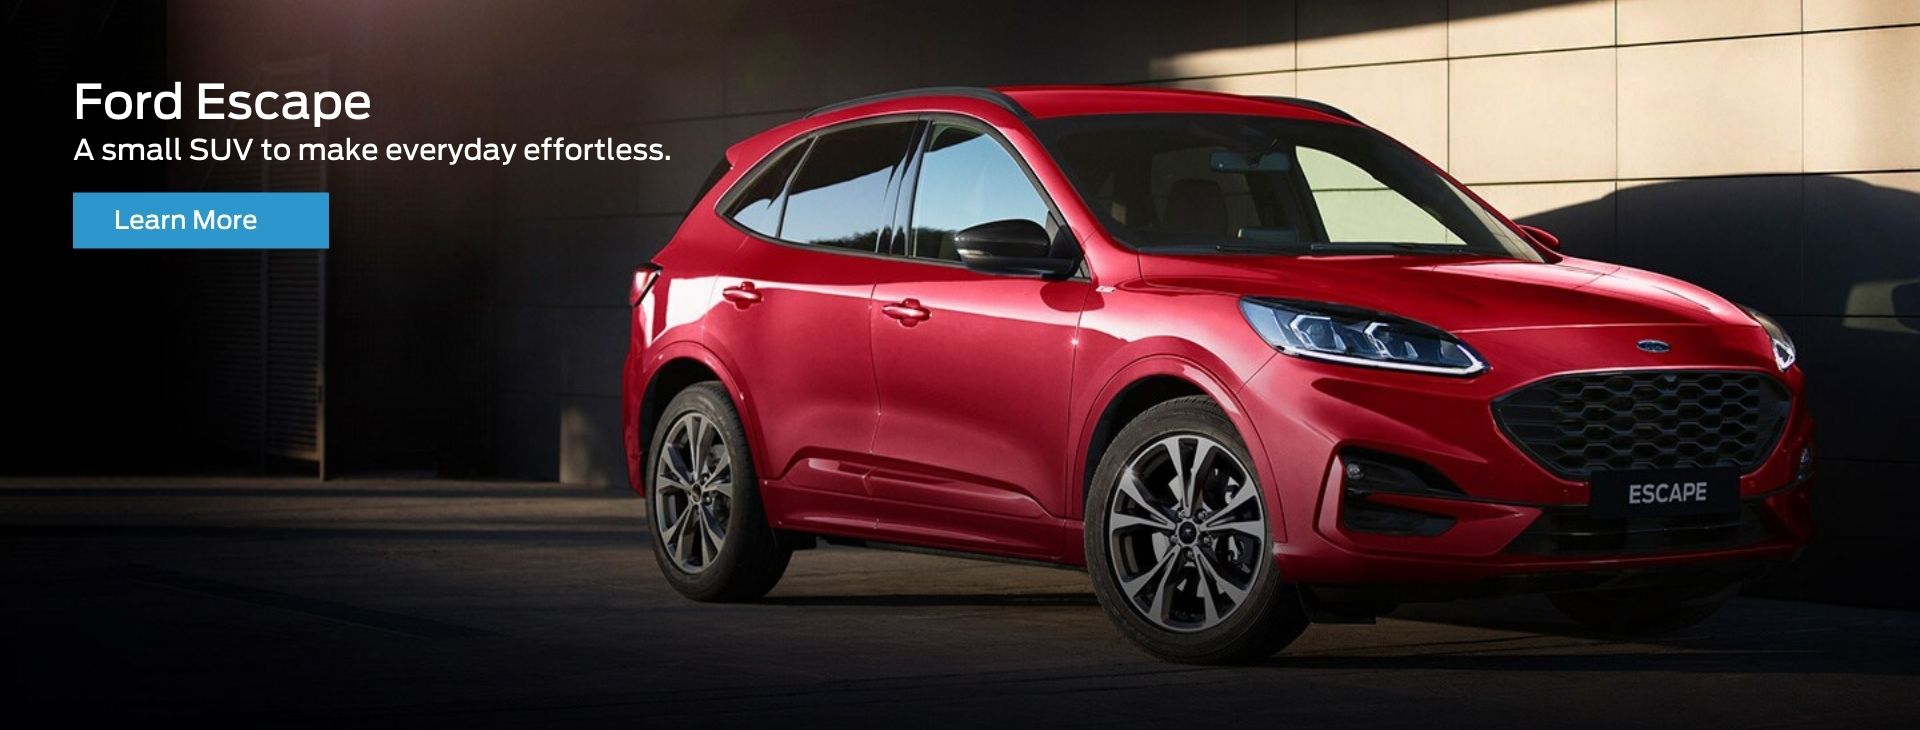 A small SUV to make everyday effortless.